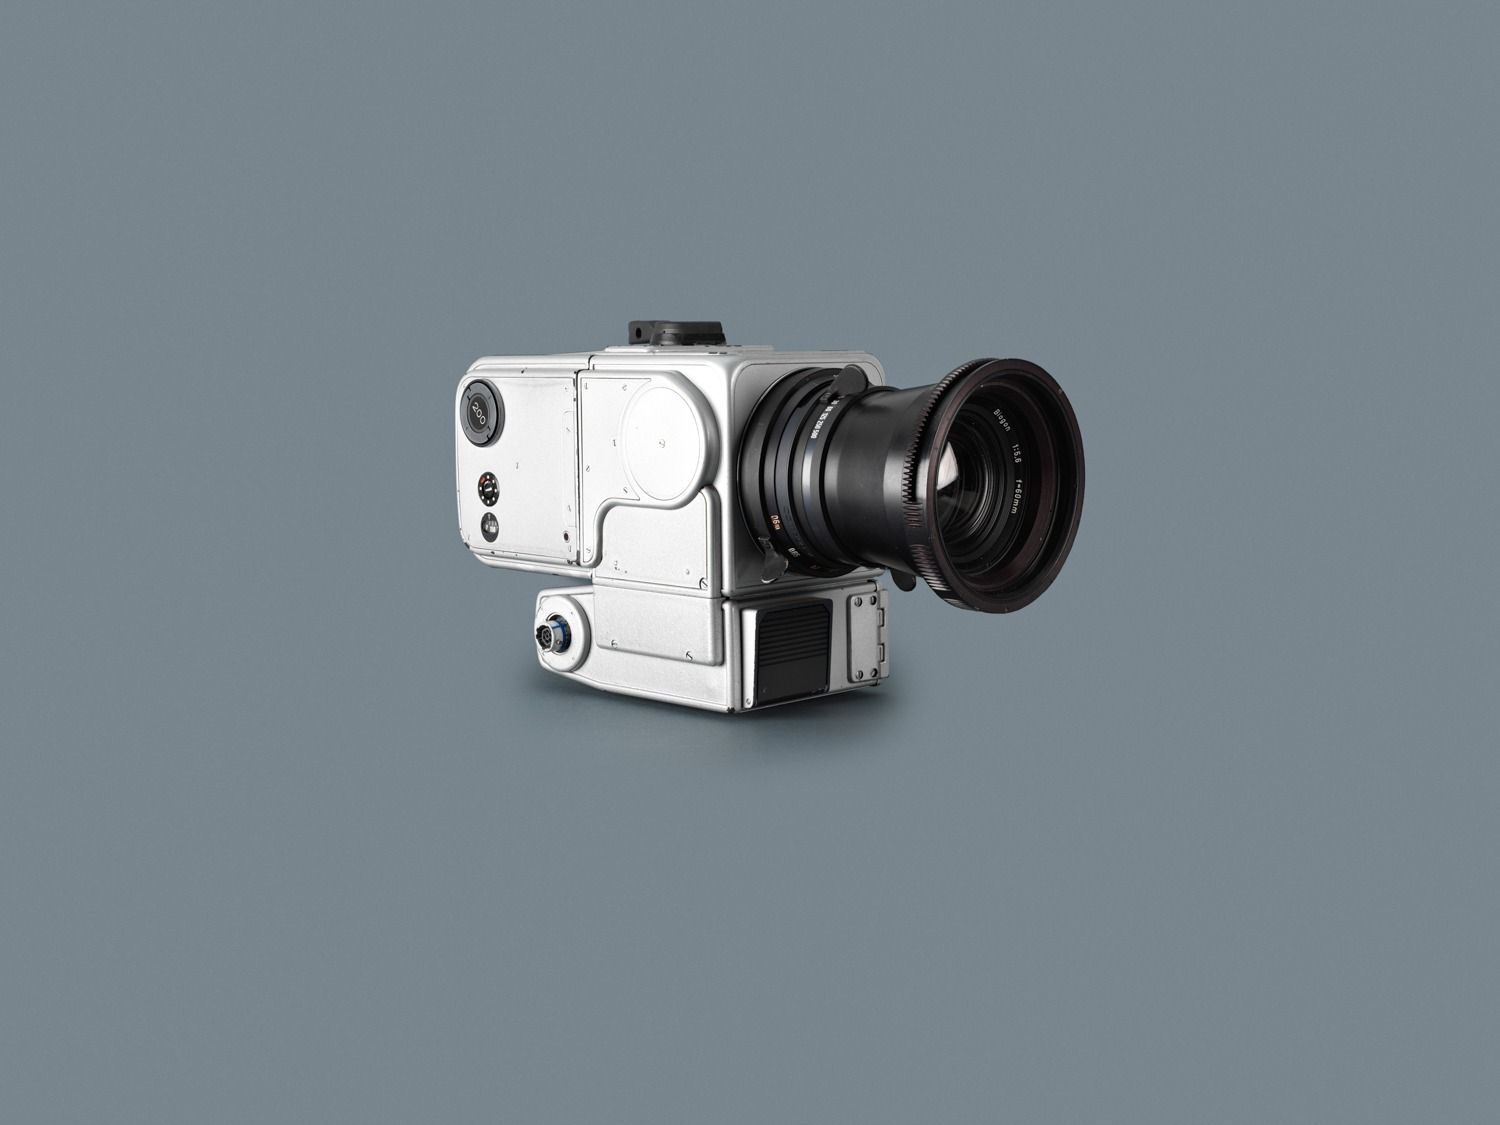 Hasselblad HDC (Hasselblad Data Camera) - silver for EV activities, used on Apollo 8, 9, 10, 11 flights. Credit: Hasselblad